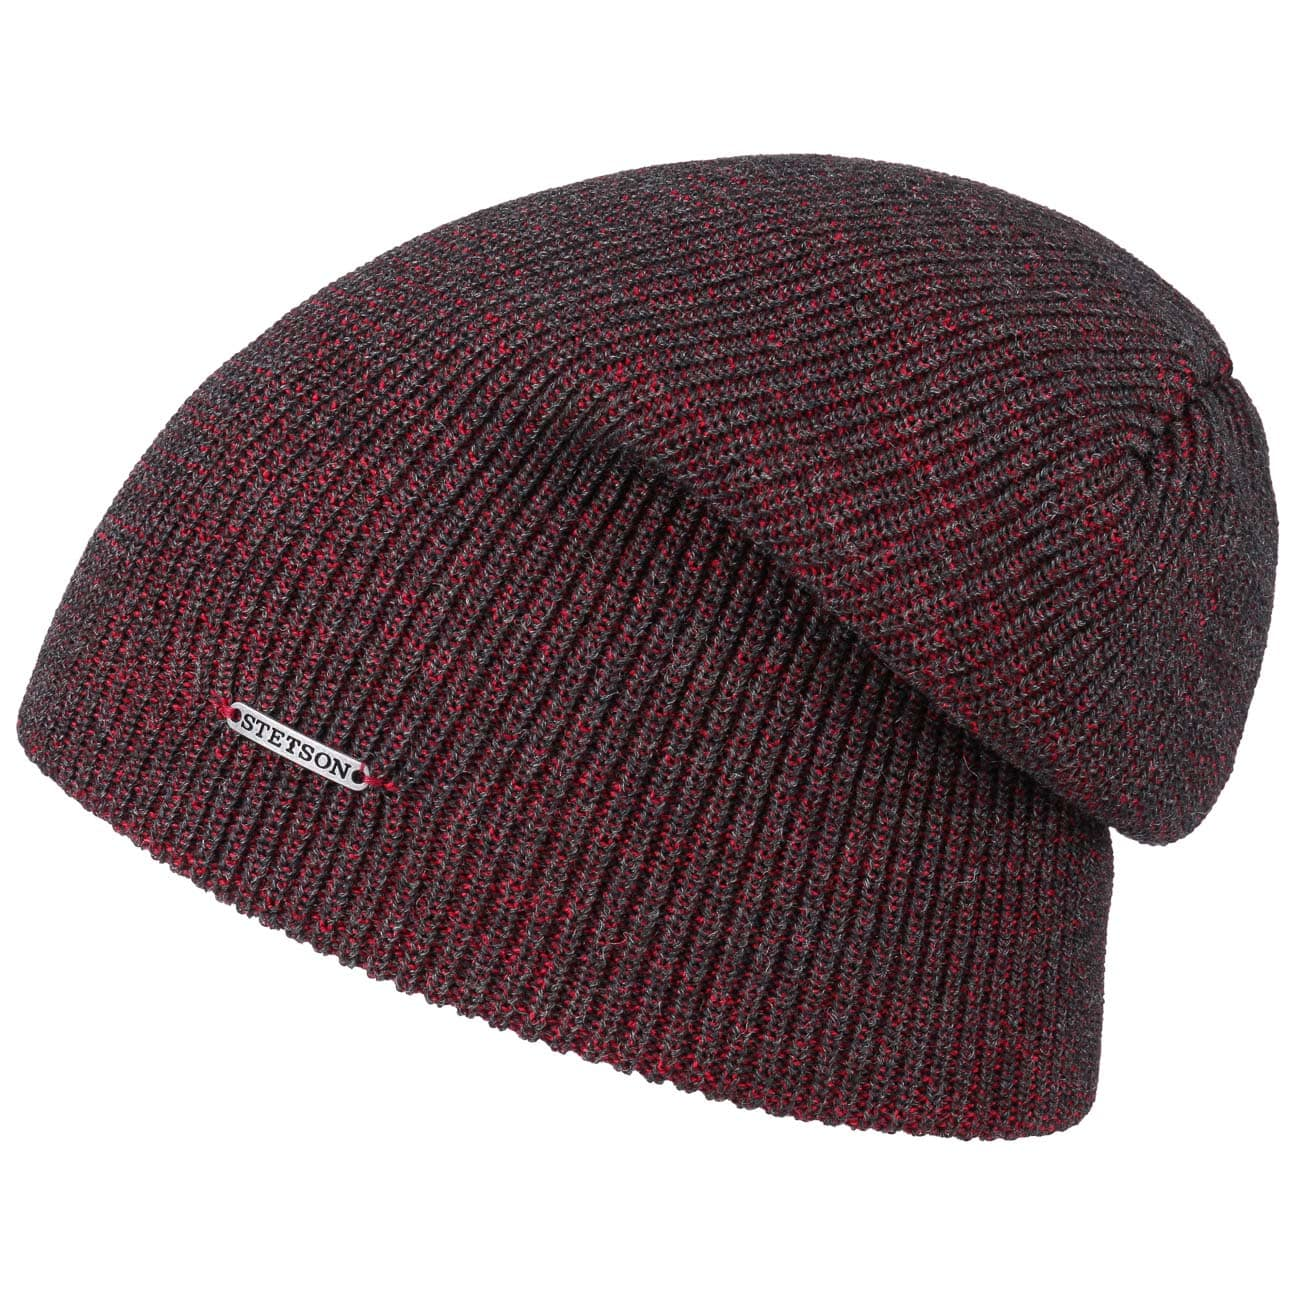 d5e2a3917f520 ... Wisconsin Merino Long Beanie by Stetson - red 3